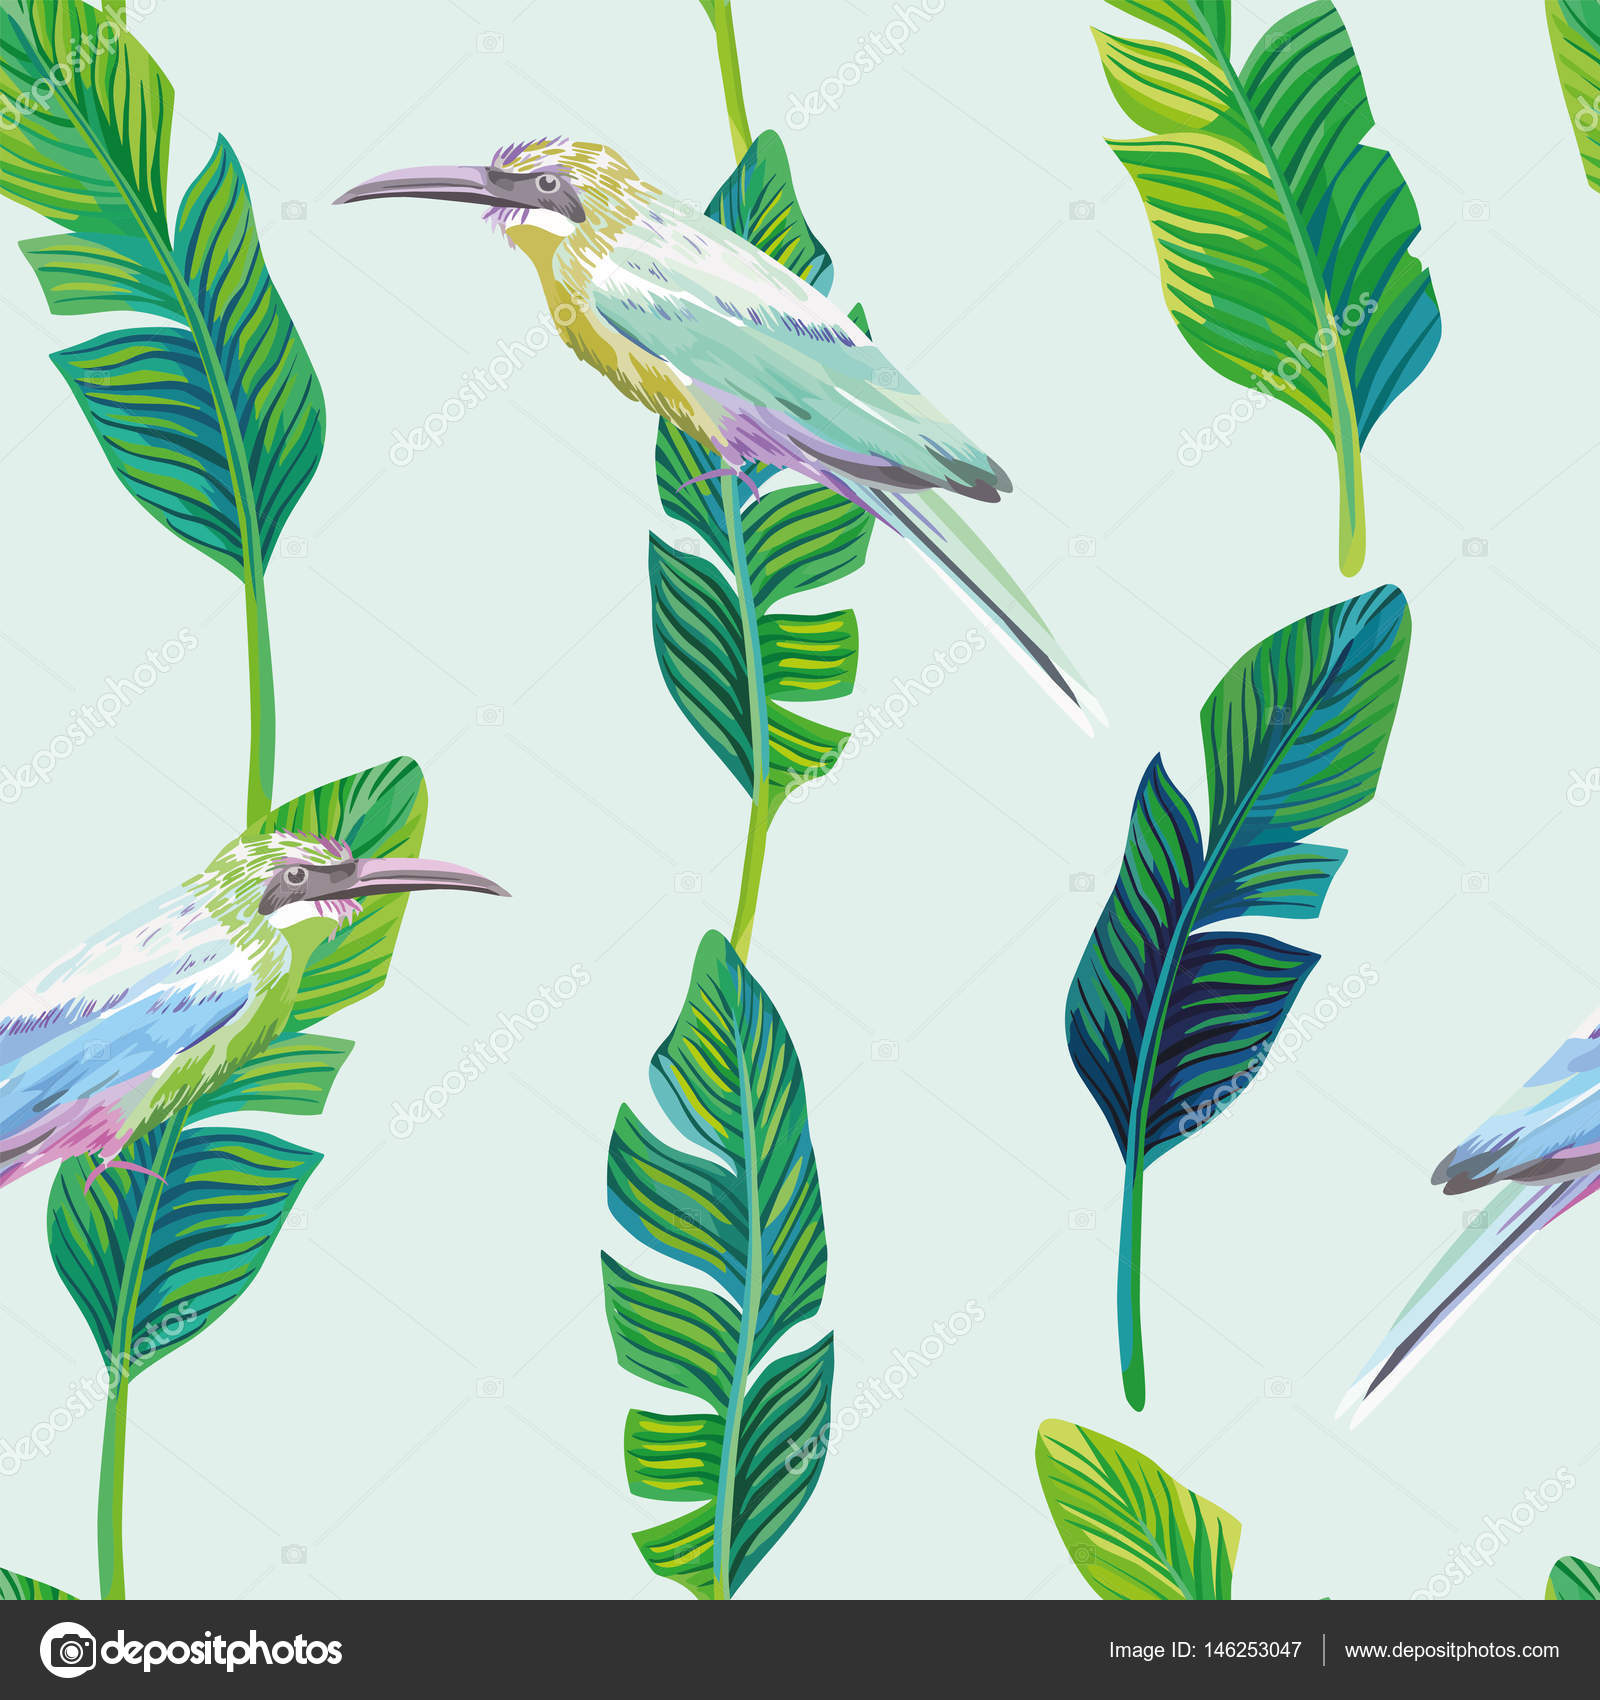 wallpaper tropical birds and foliage - photo #28